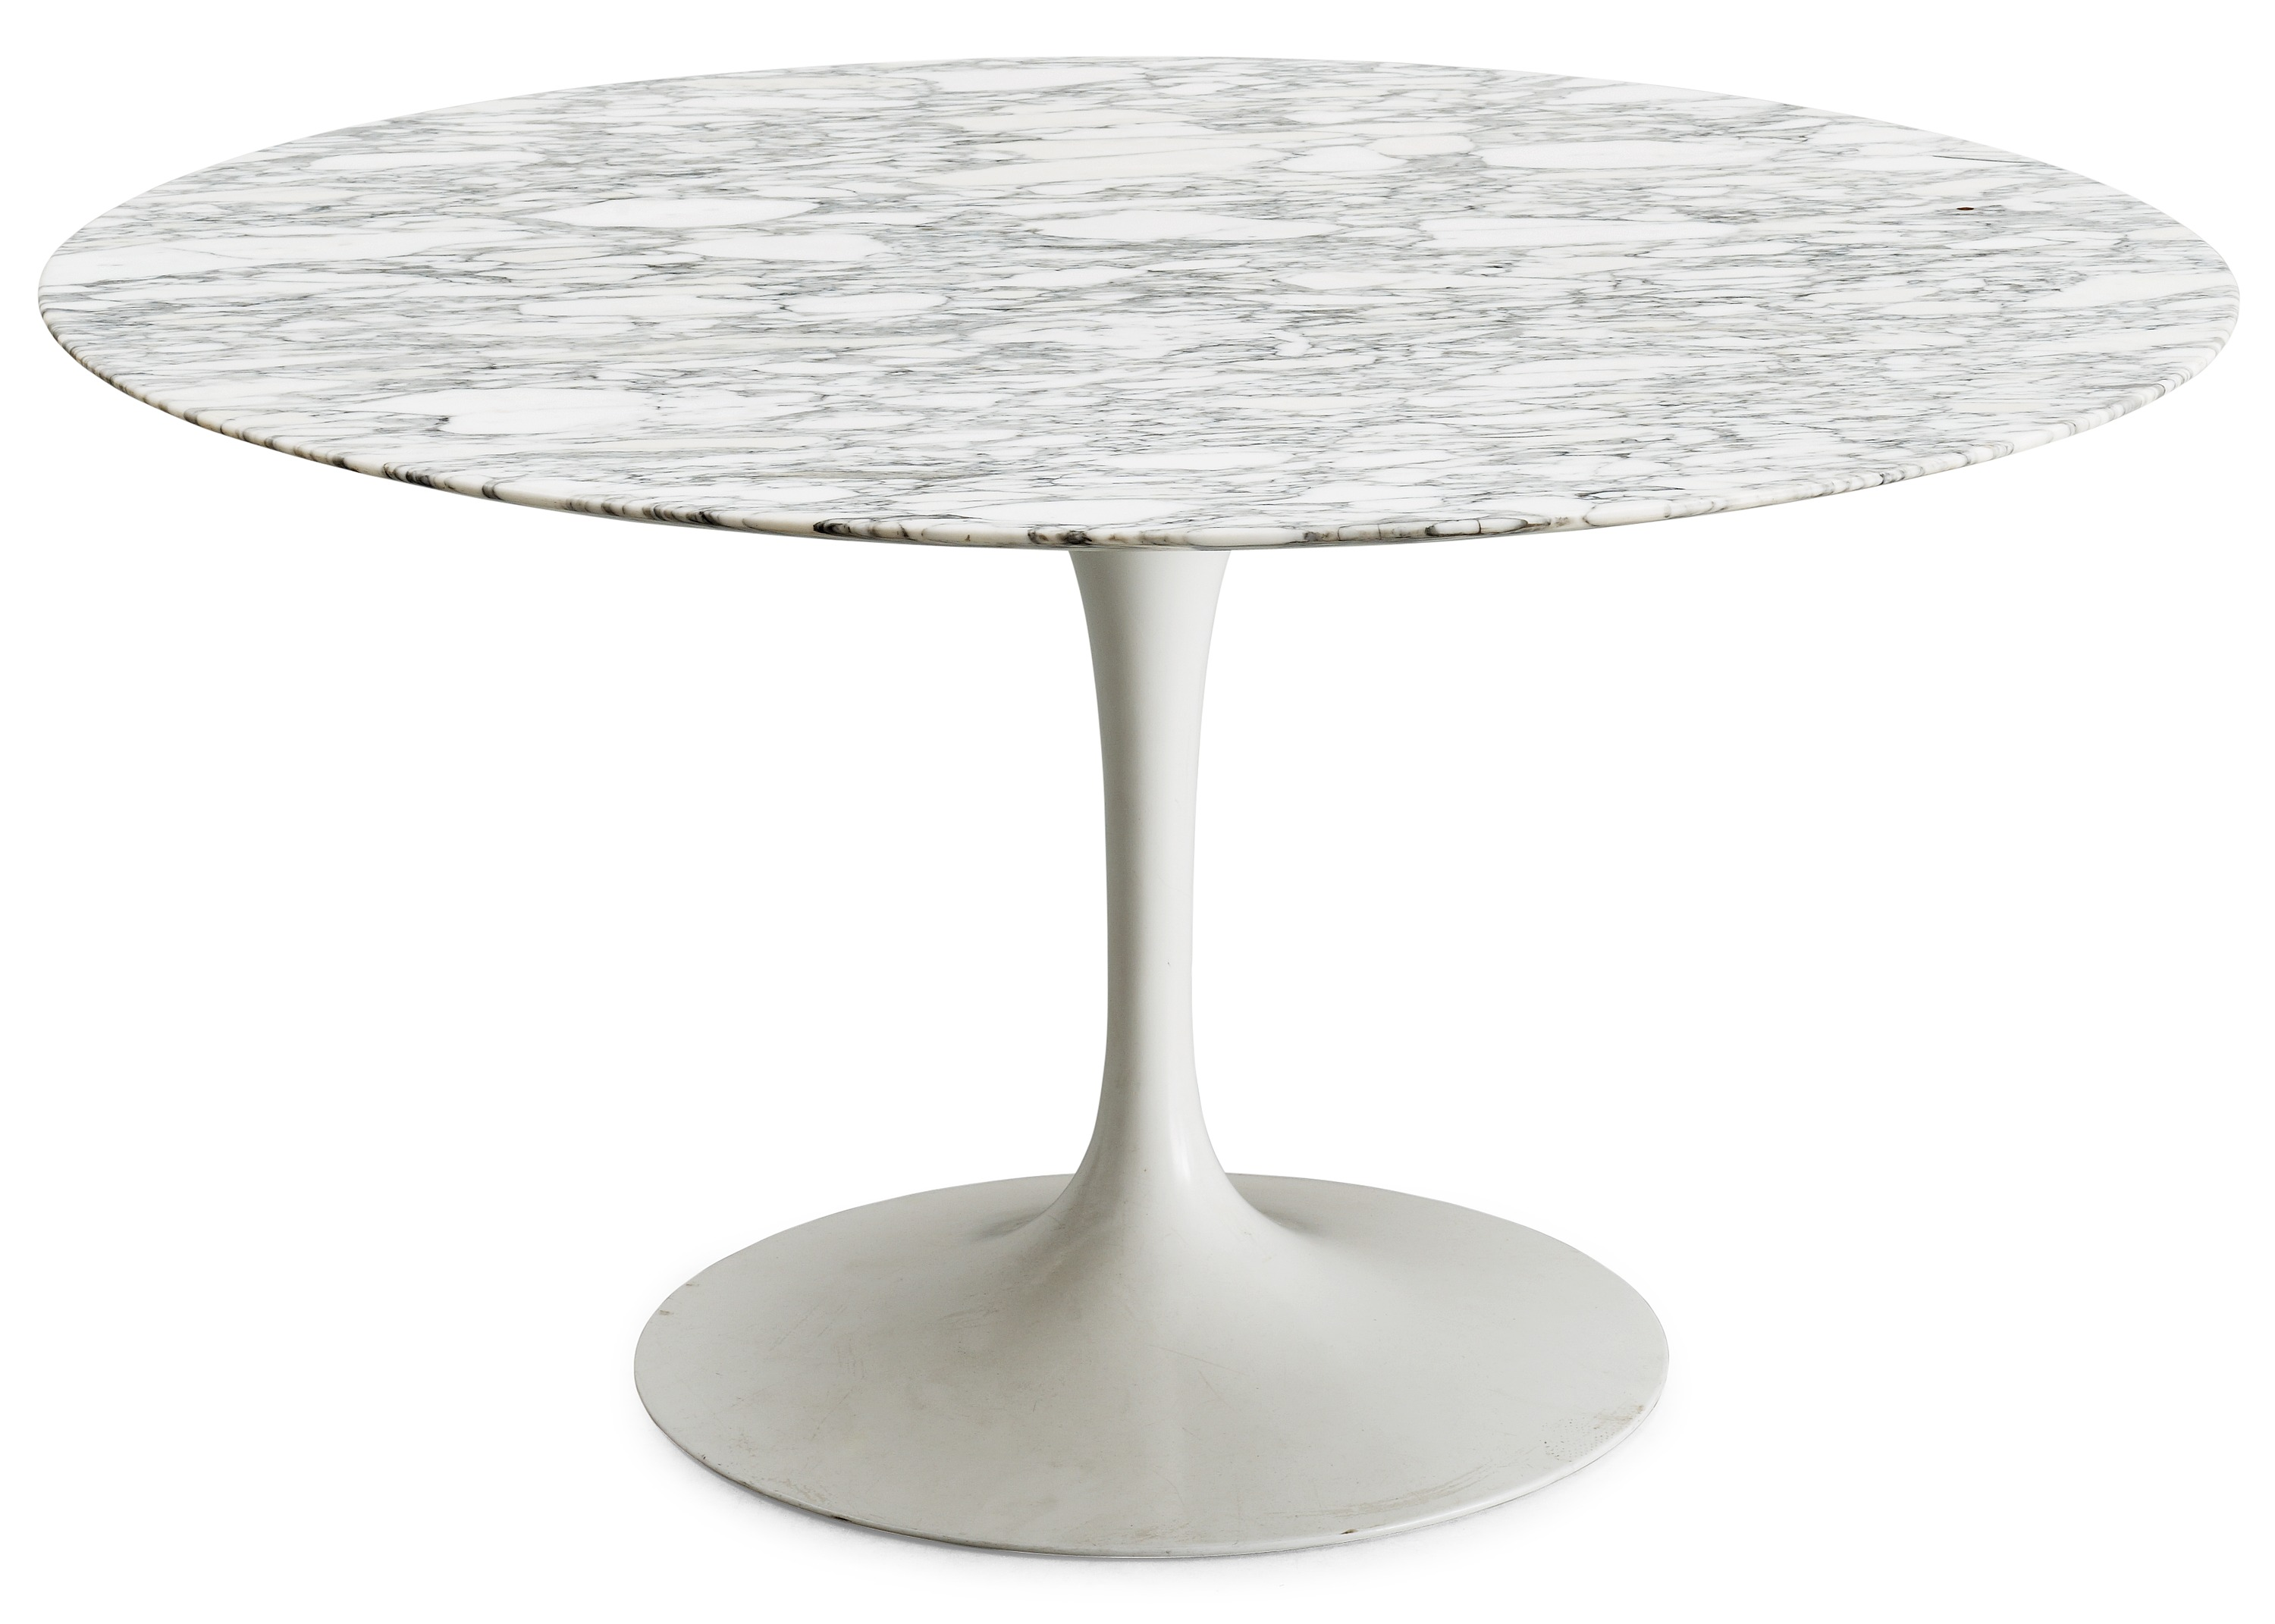 Table Knoll Tulipe An Eero Saarinen Tulip Marble Top Dinner Table Knoll